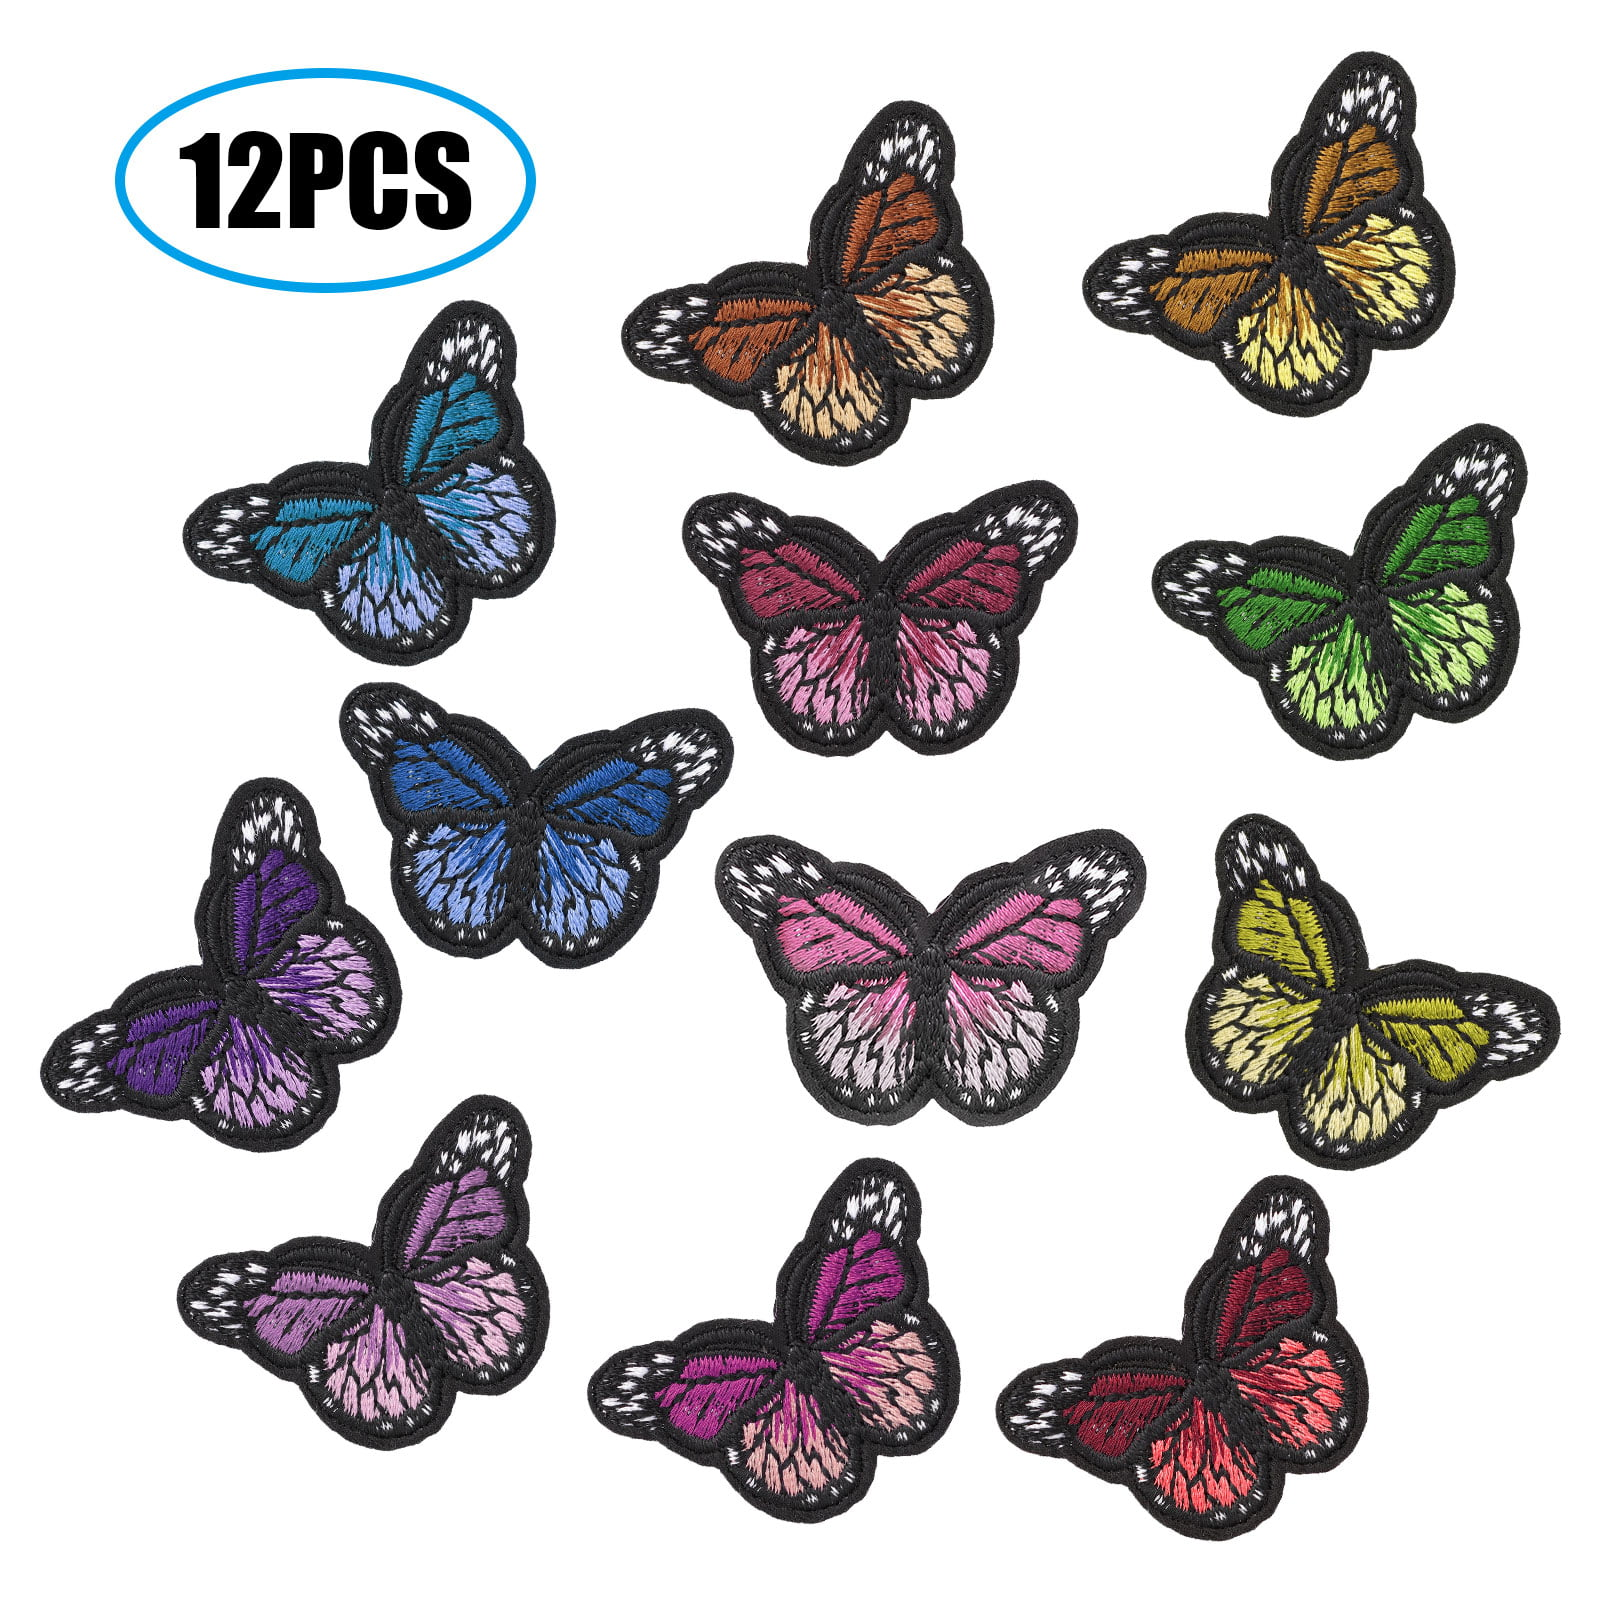 Butterfly Flower Branch Embroidery Sew Iron On Patch Fabric Sticker Sewing KS